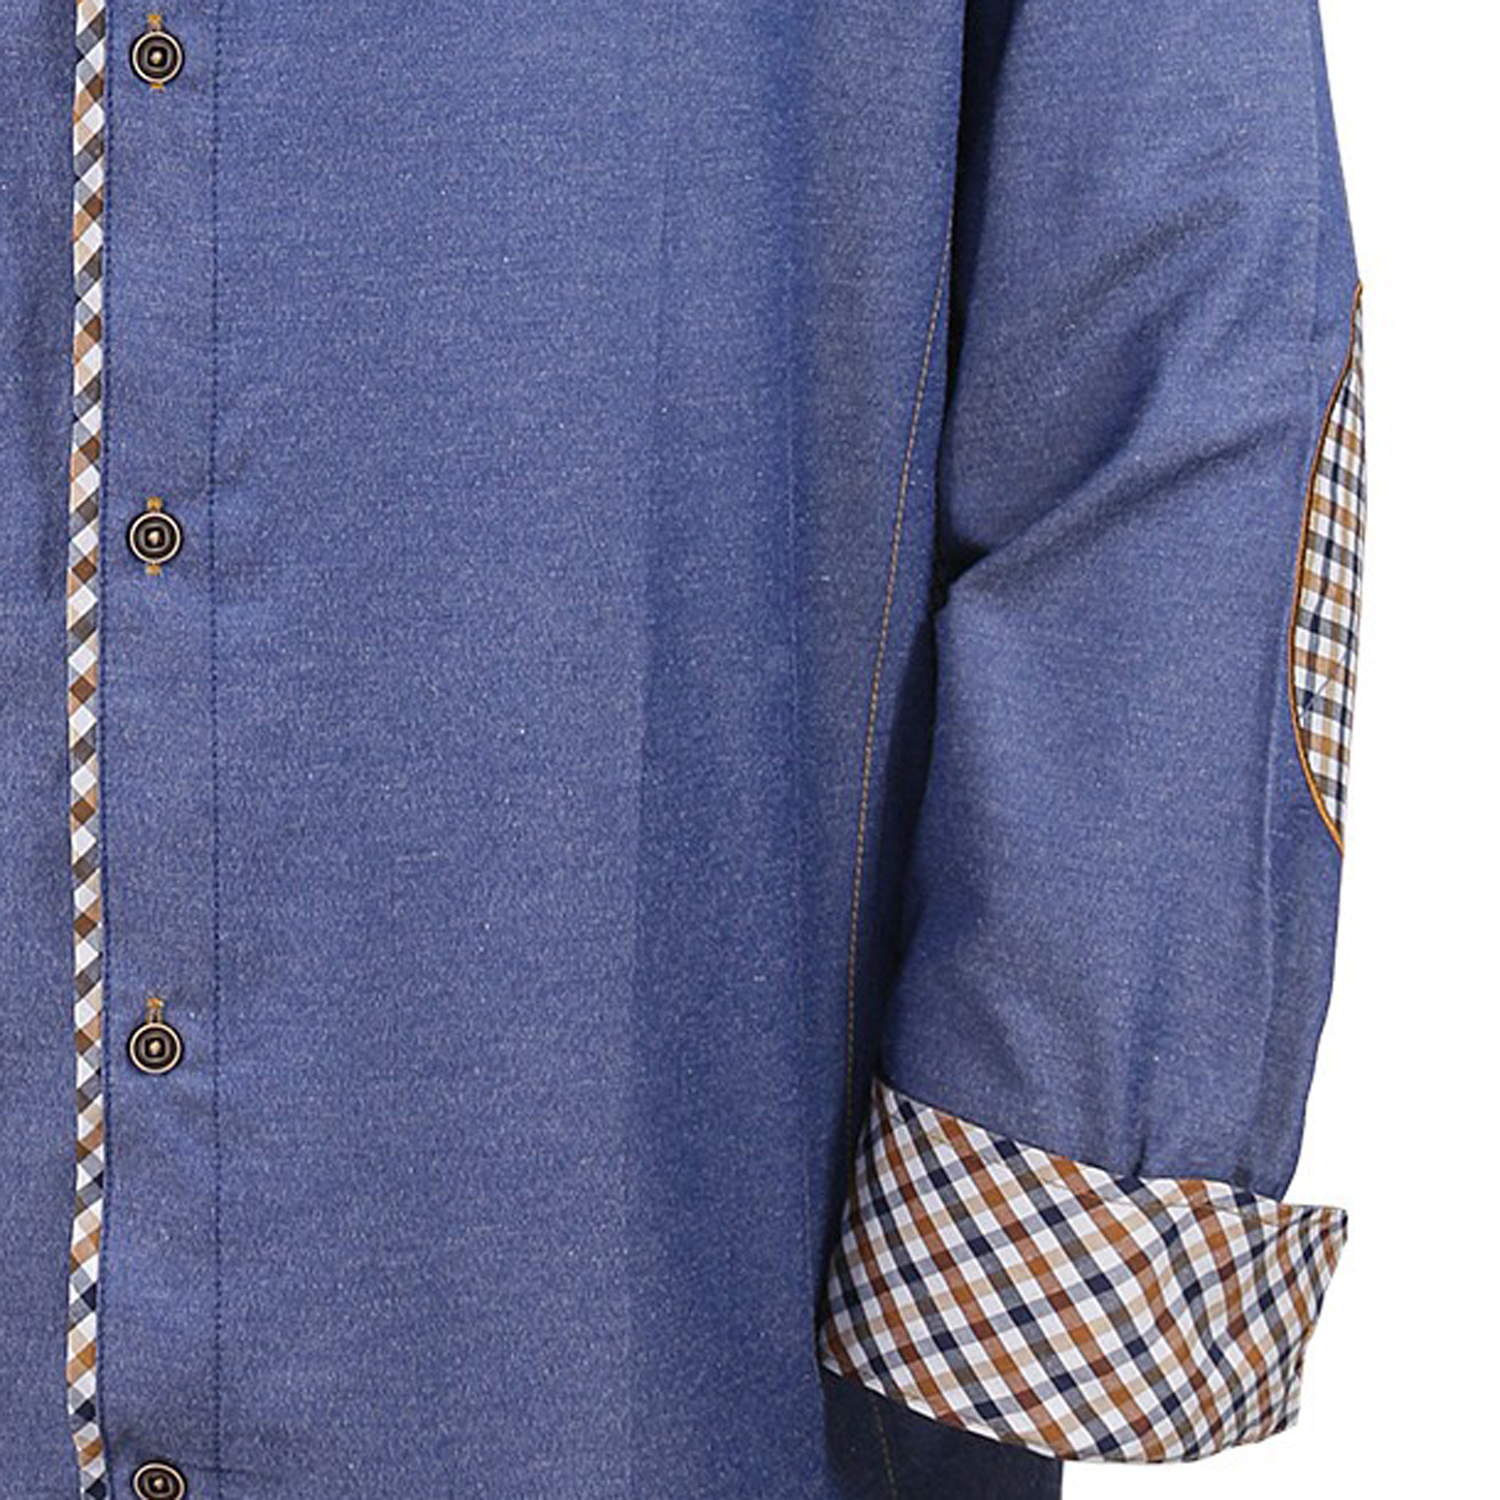 Detail Image to Lavecchia - blue shirt for men in XXL sizes available